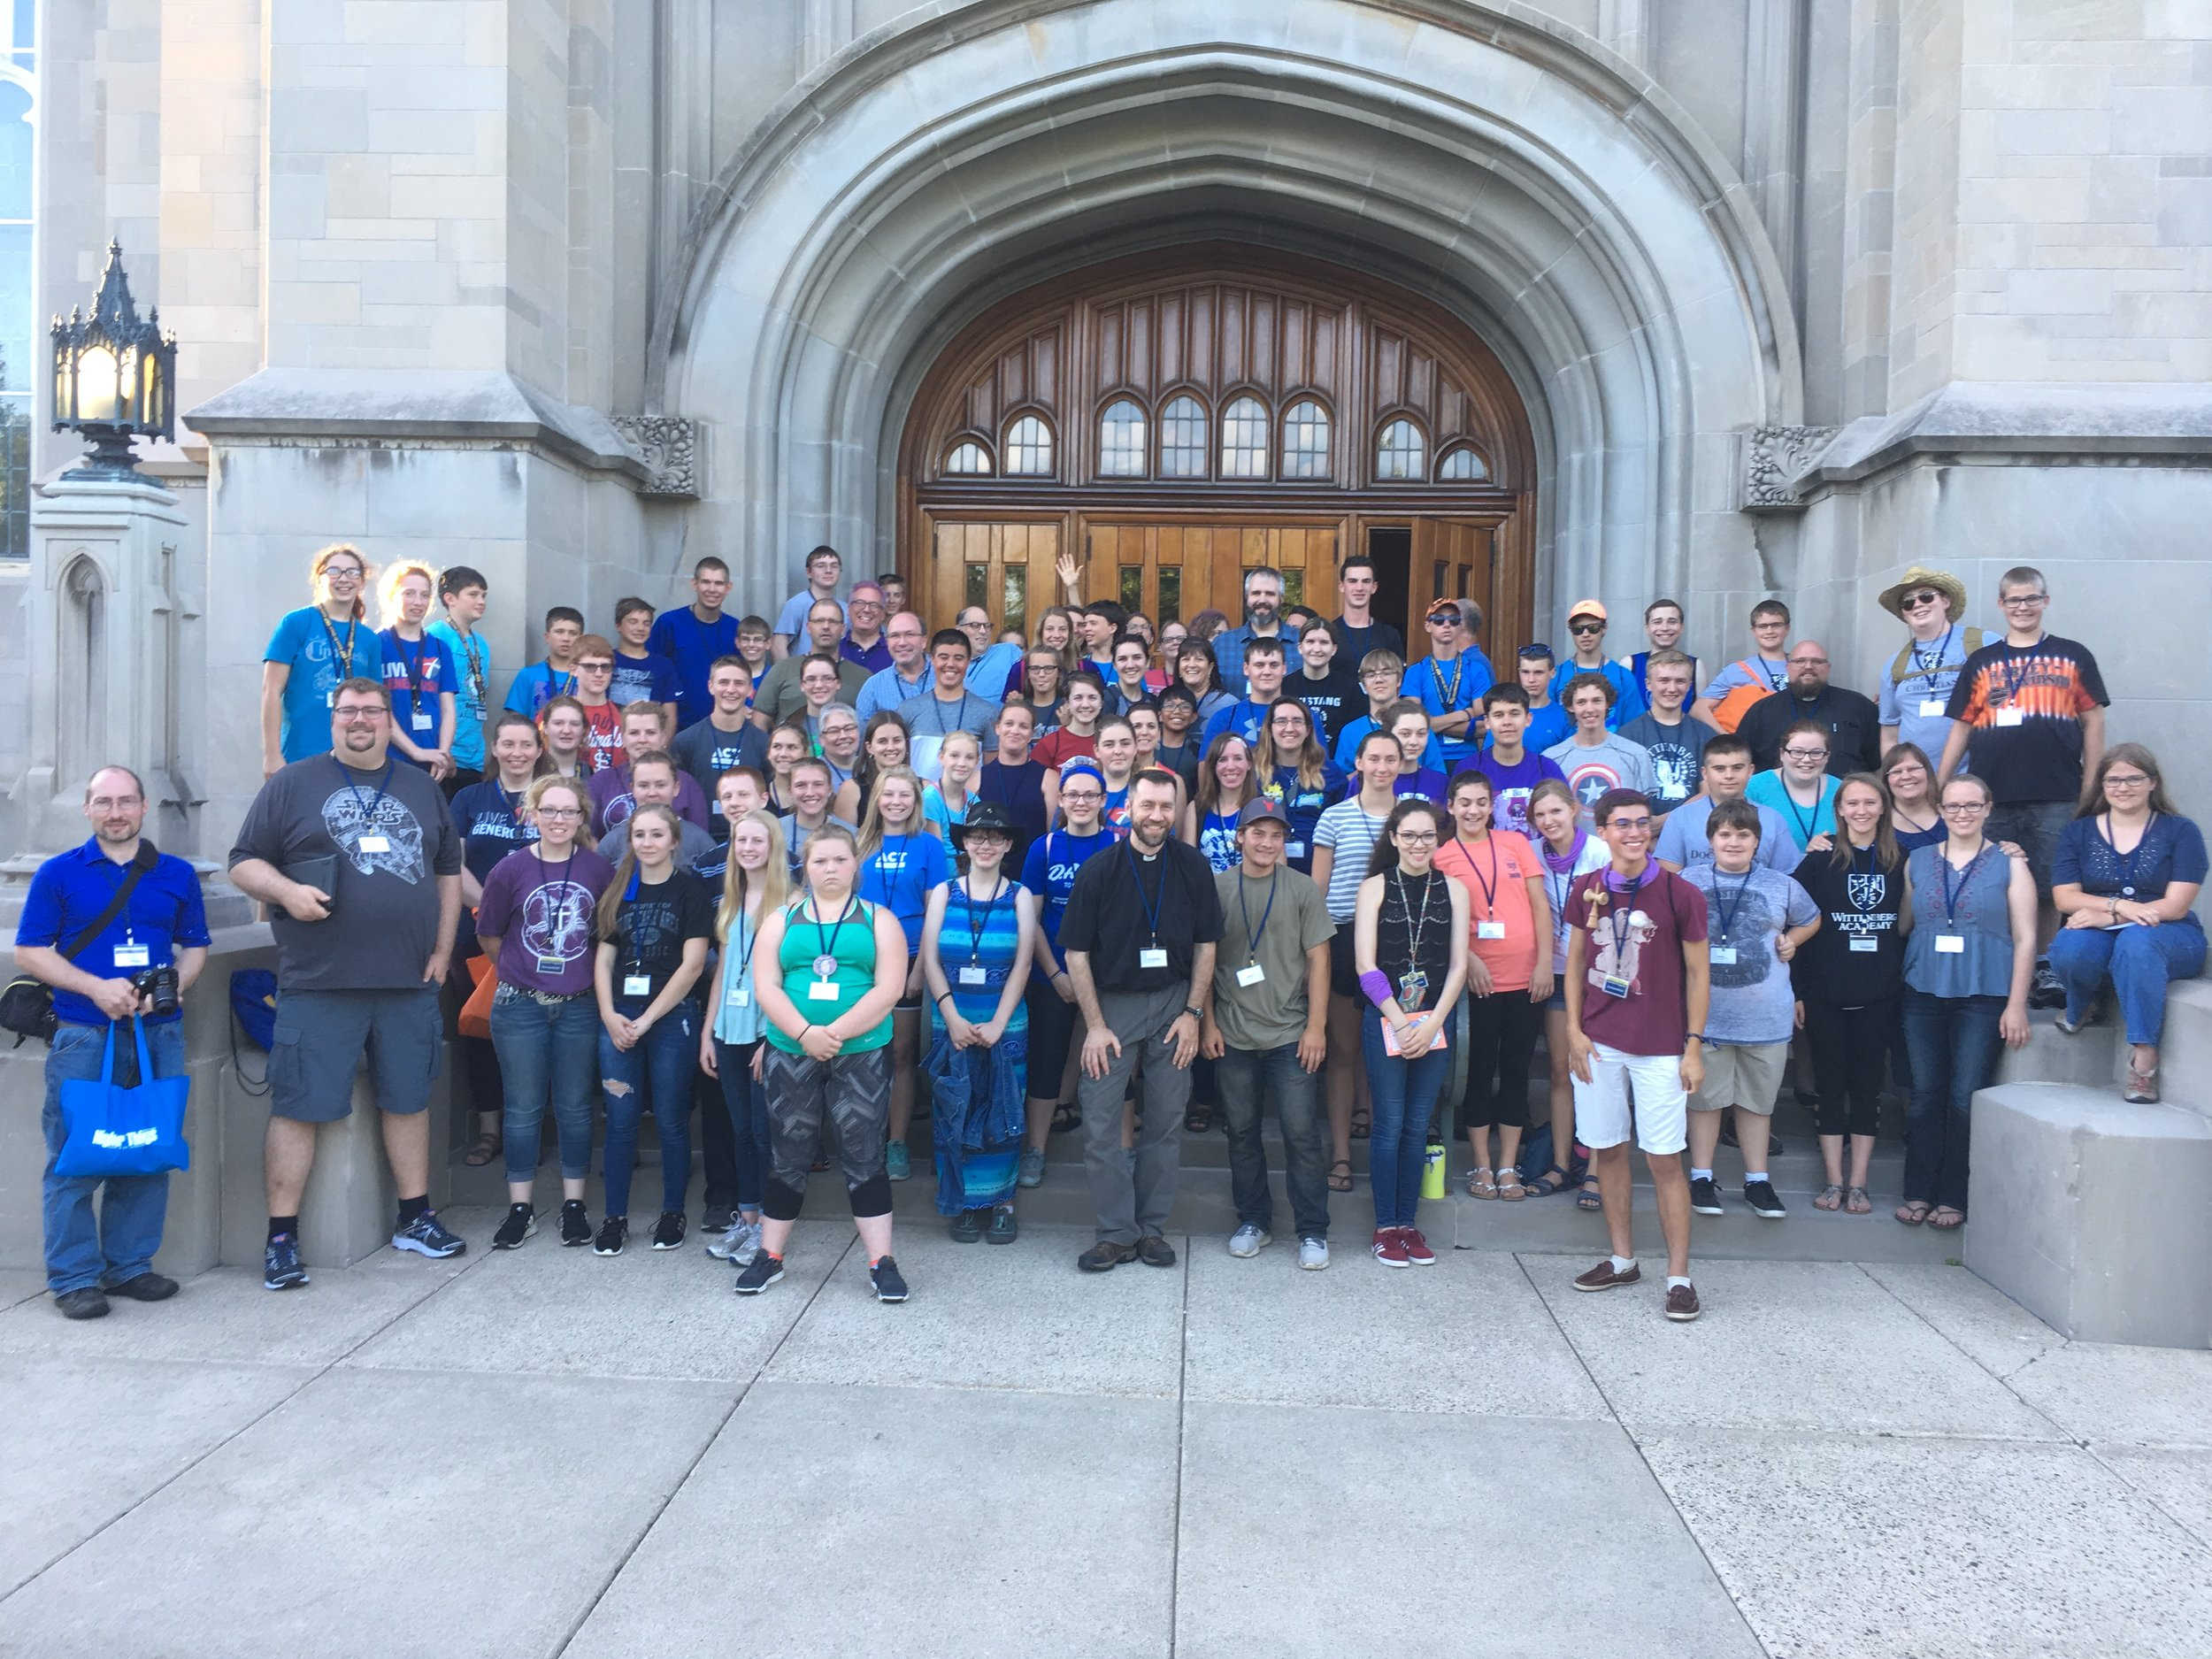 Youth and leaders alike from several congregations from MN South District enjoyed being able to attend the Higher Things Youth Conference close to home this year, from July 3rd-6th on the campus of Carleton College in Northfield. Those attending included St. Paul, Blue Earth; St. John's, Cedar Mills; St. Paul, Chatifield; St. Paul, Fairmont; St. Paul, Fulda; Our Savior, Hutchinson; St. Peter, and Holy Trinity, Lakefield; University Lutheran Chapel, Minneapolis; Immanuel, Plainview; St. John, Plato; St. John's - Rich Valley, Rosemount; First English, Spring Valley; Trinity, Waltham; Our Savior, Winnebago; St. John, Wykoff